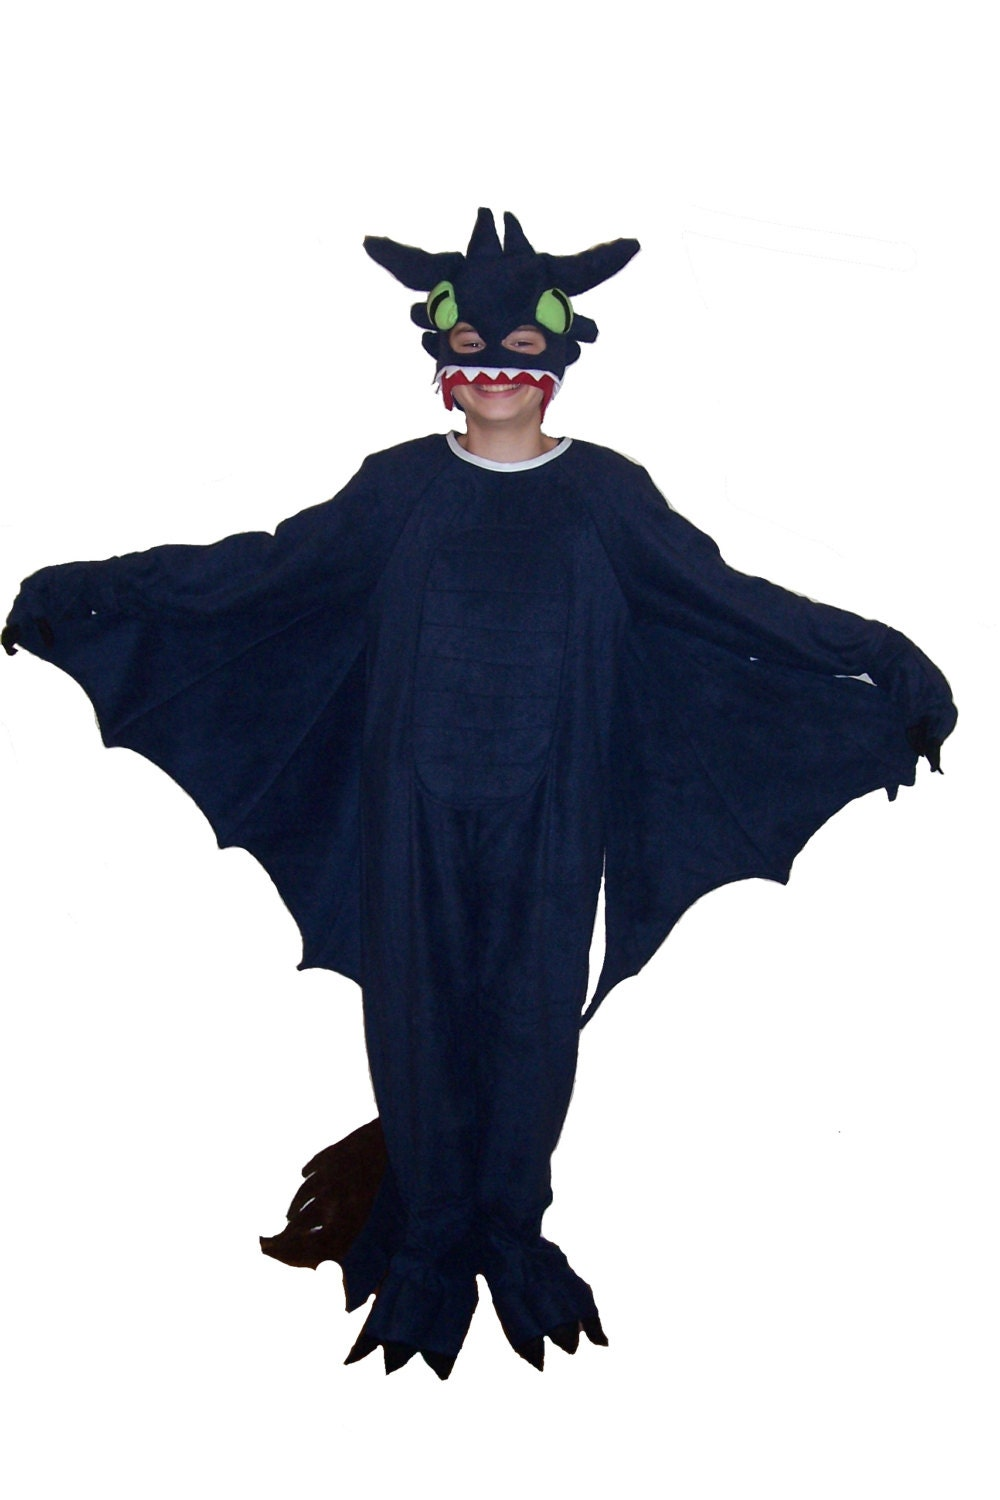 how to train your dragon night fury toothless inspired costume